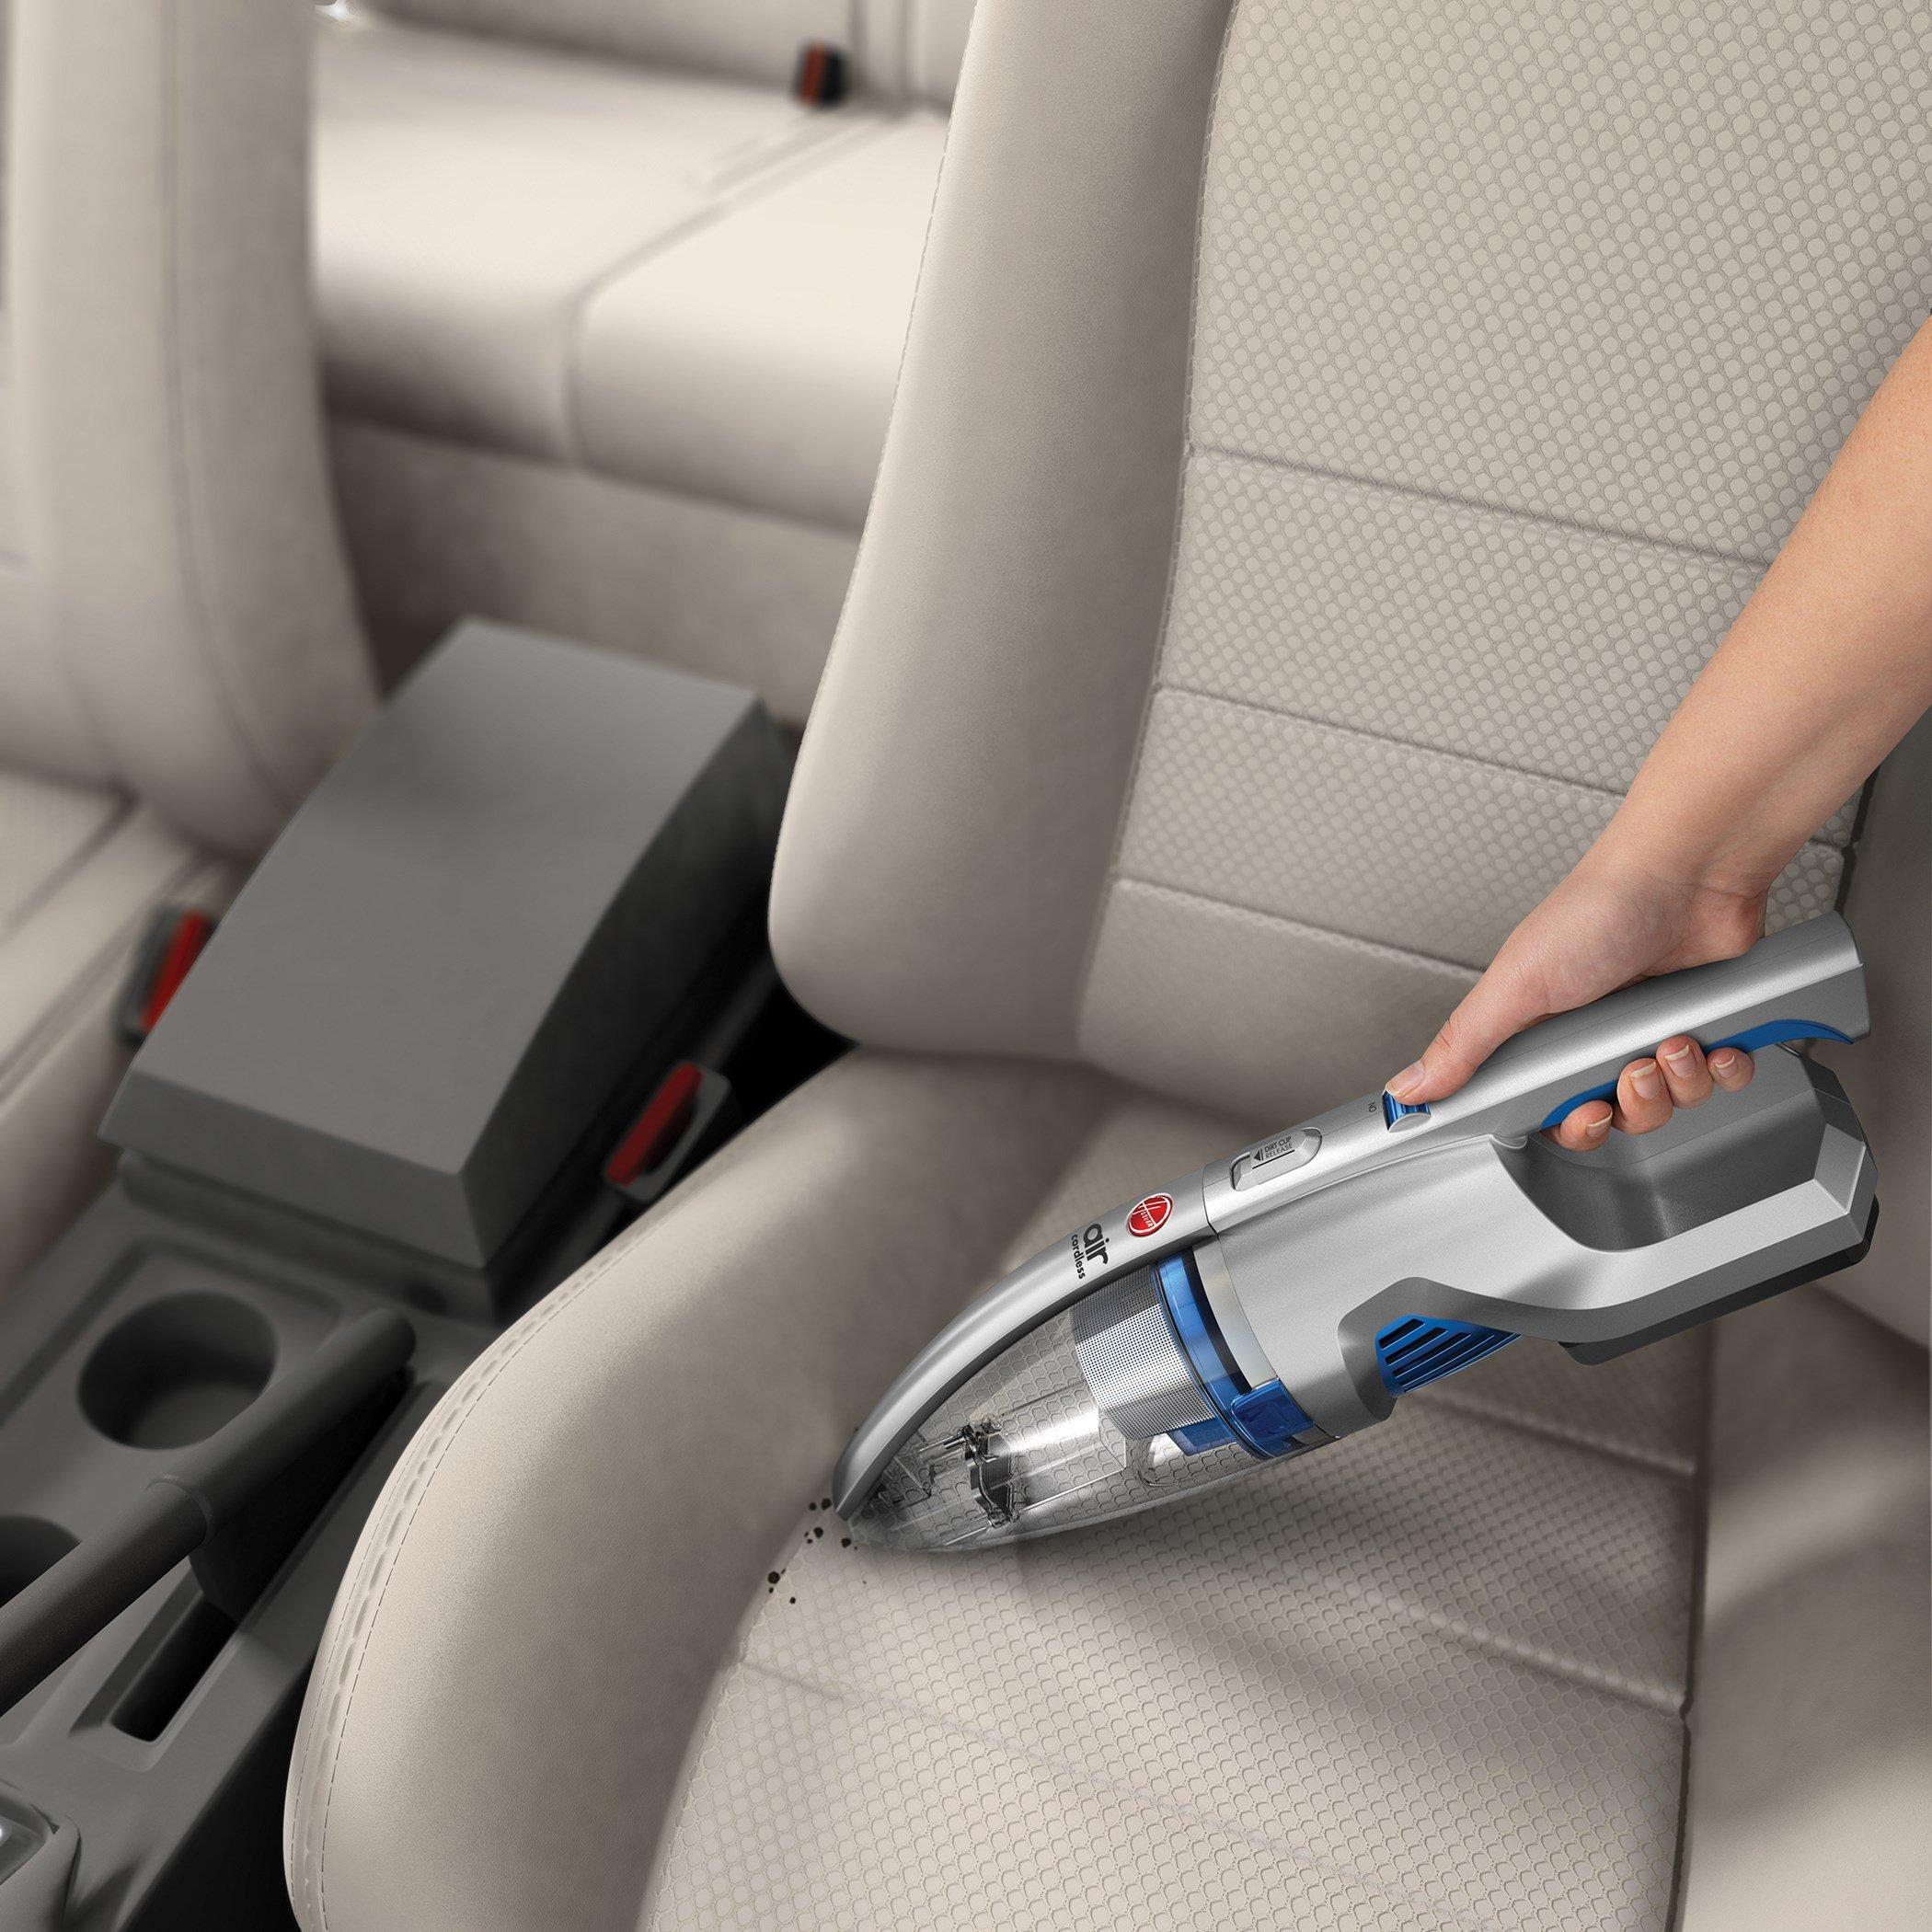 Air Cordless Handheld Vacuum (Battery Not Included)4